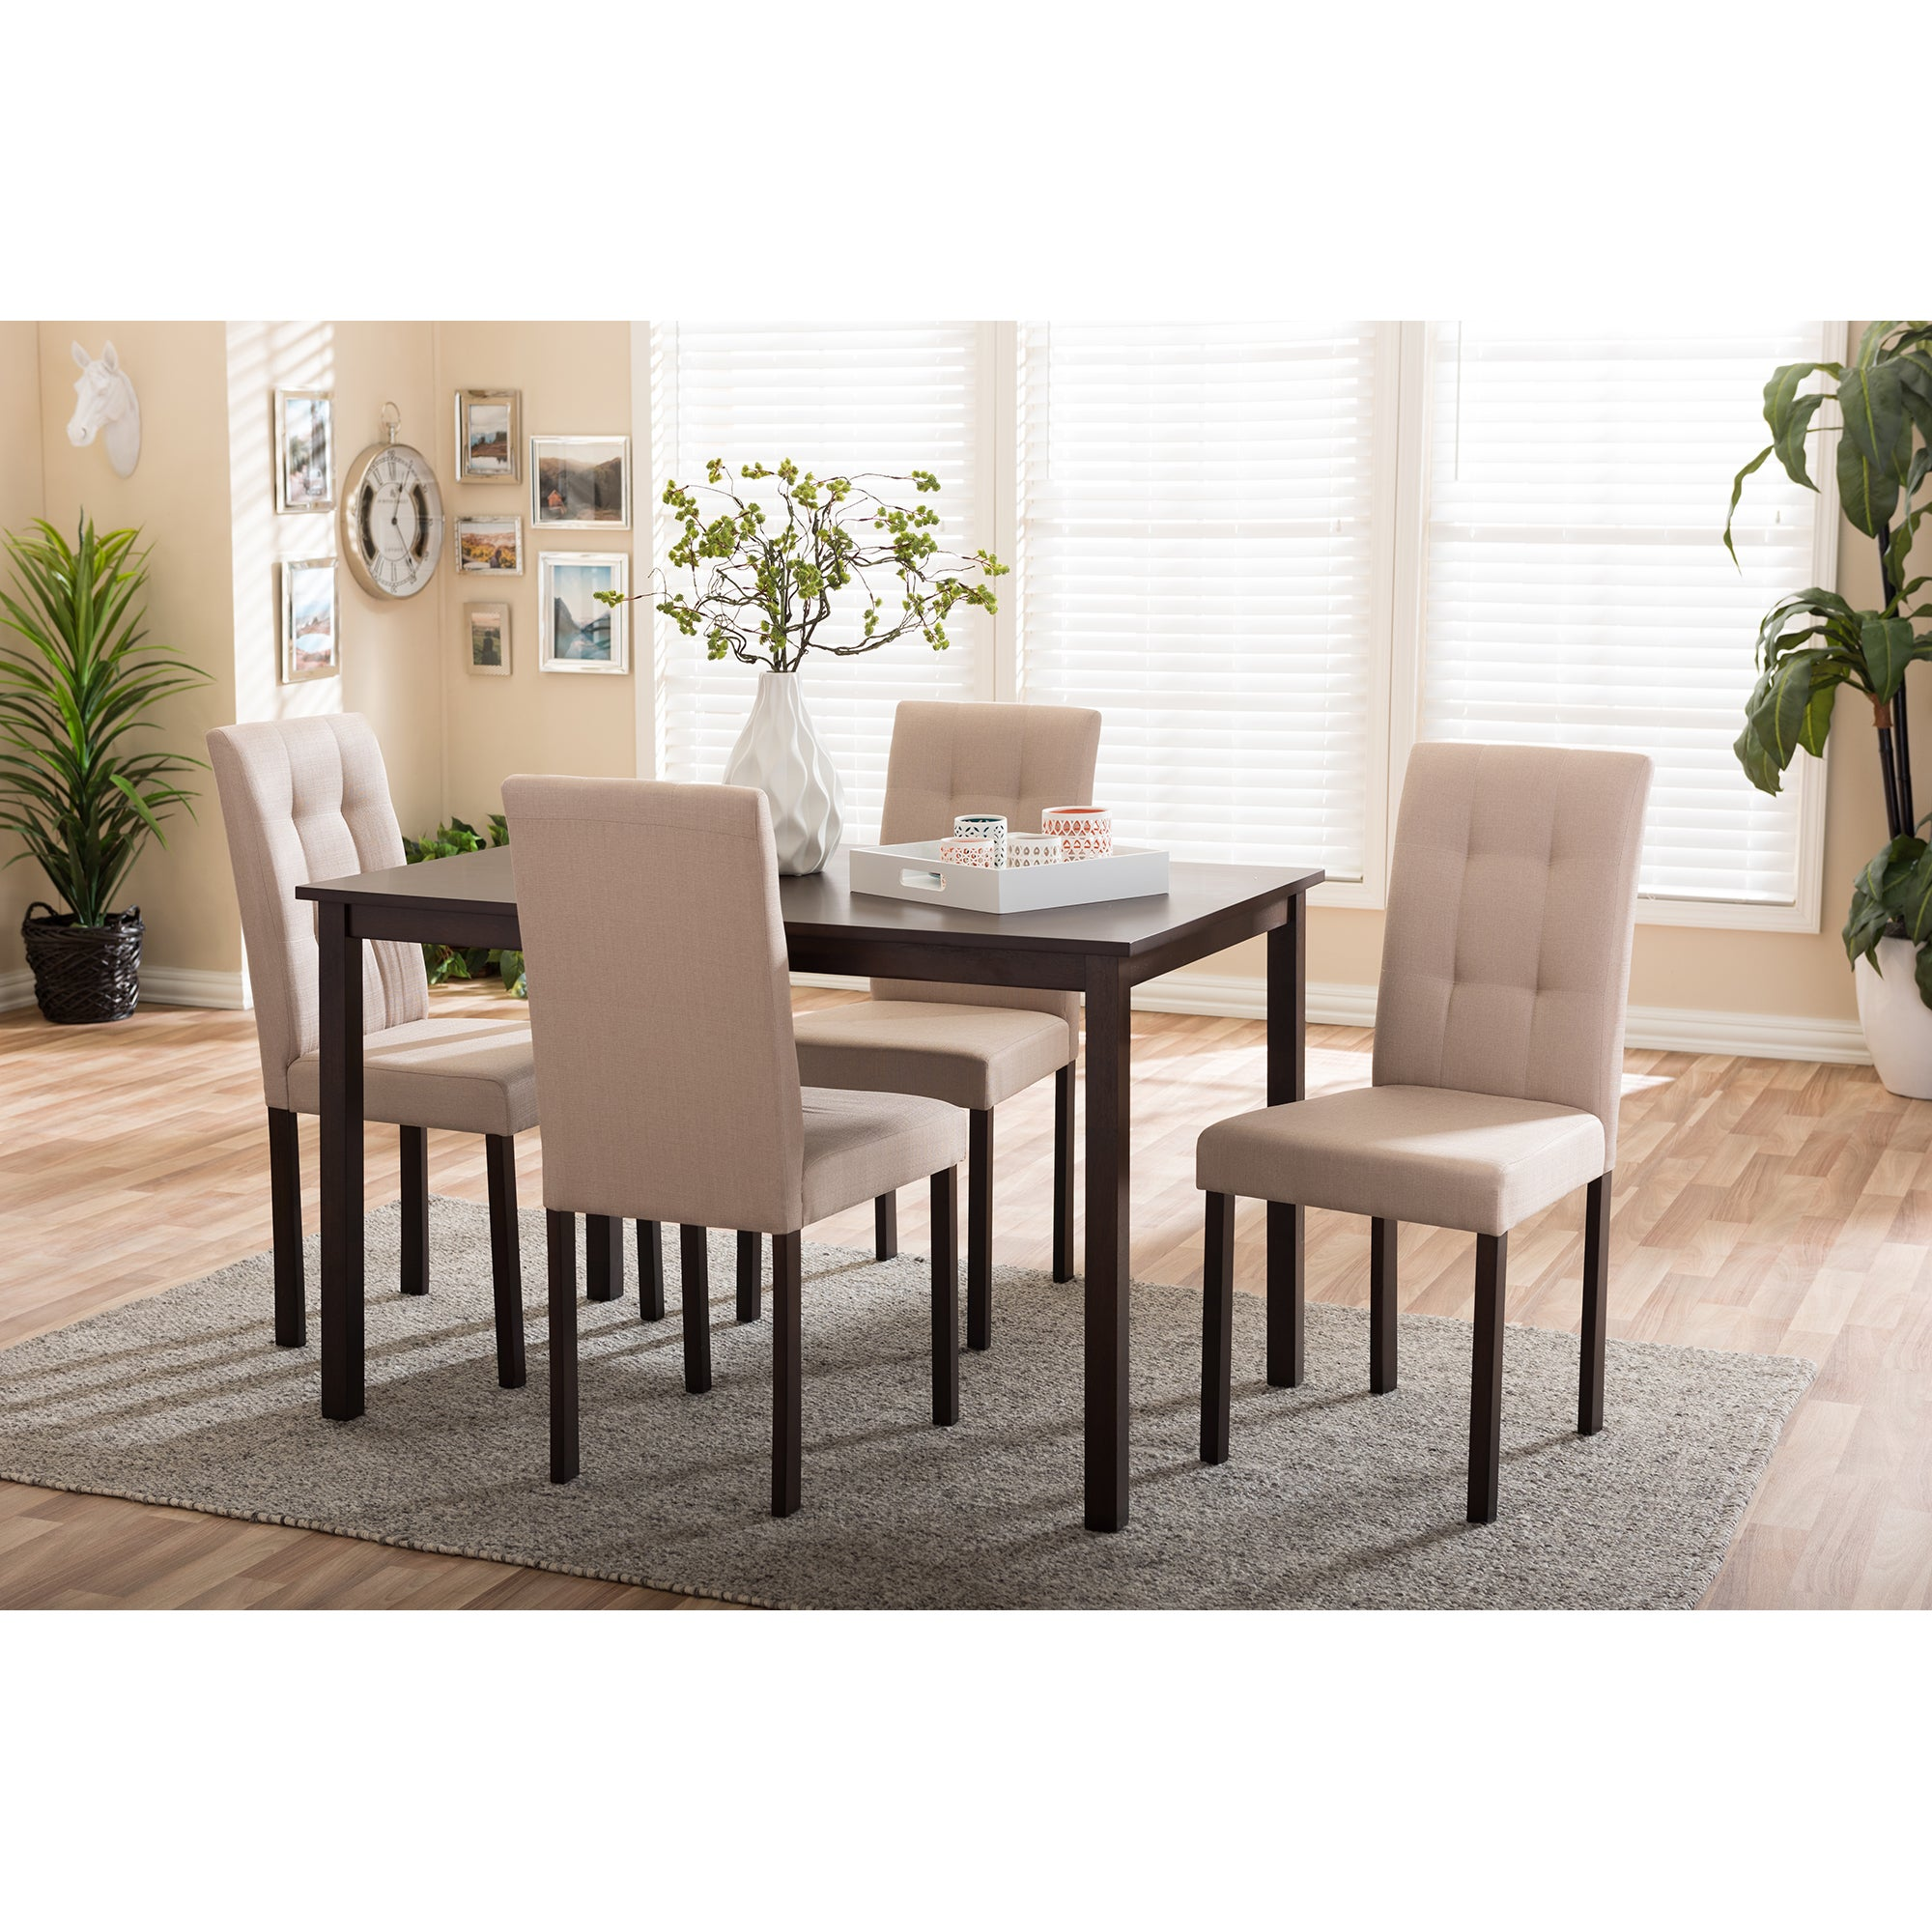 All Wood Dining Room Table Buy Kitchen u0026 Dining Room Sets Online at Overstock | Our Best Dining Room u0026  Bar Furniture Deals